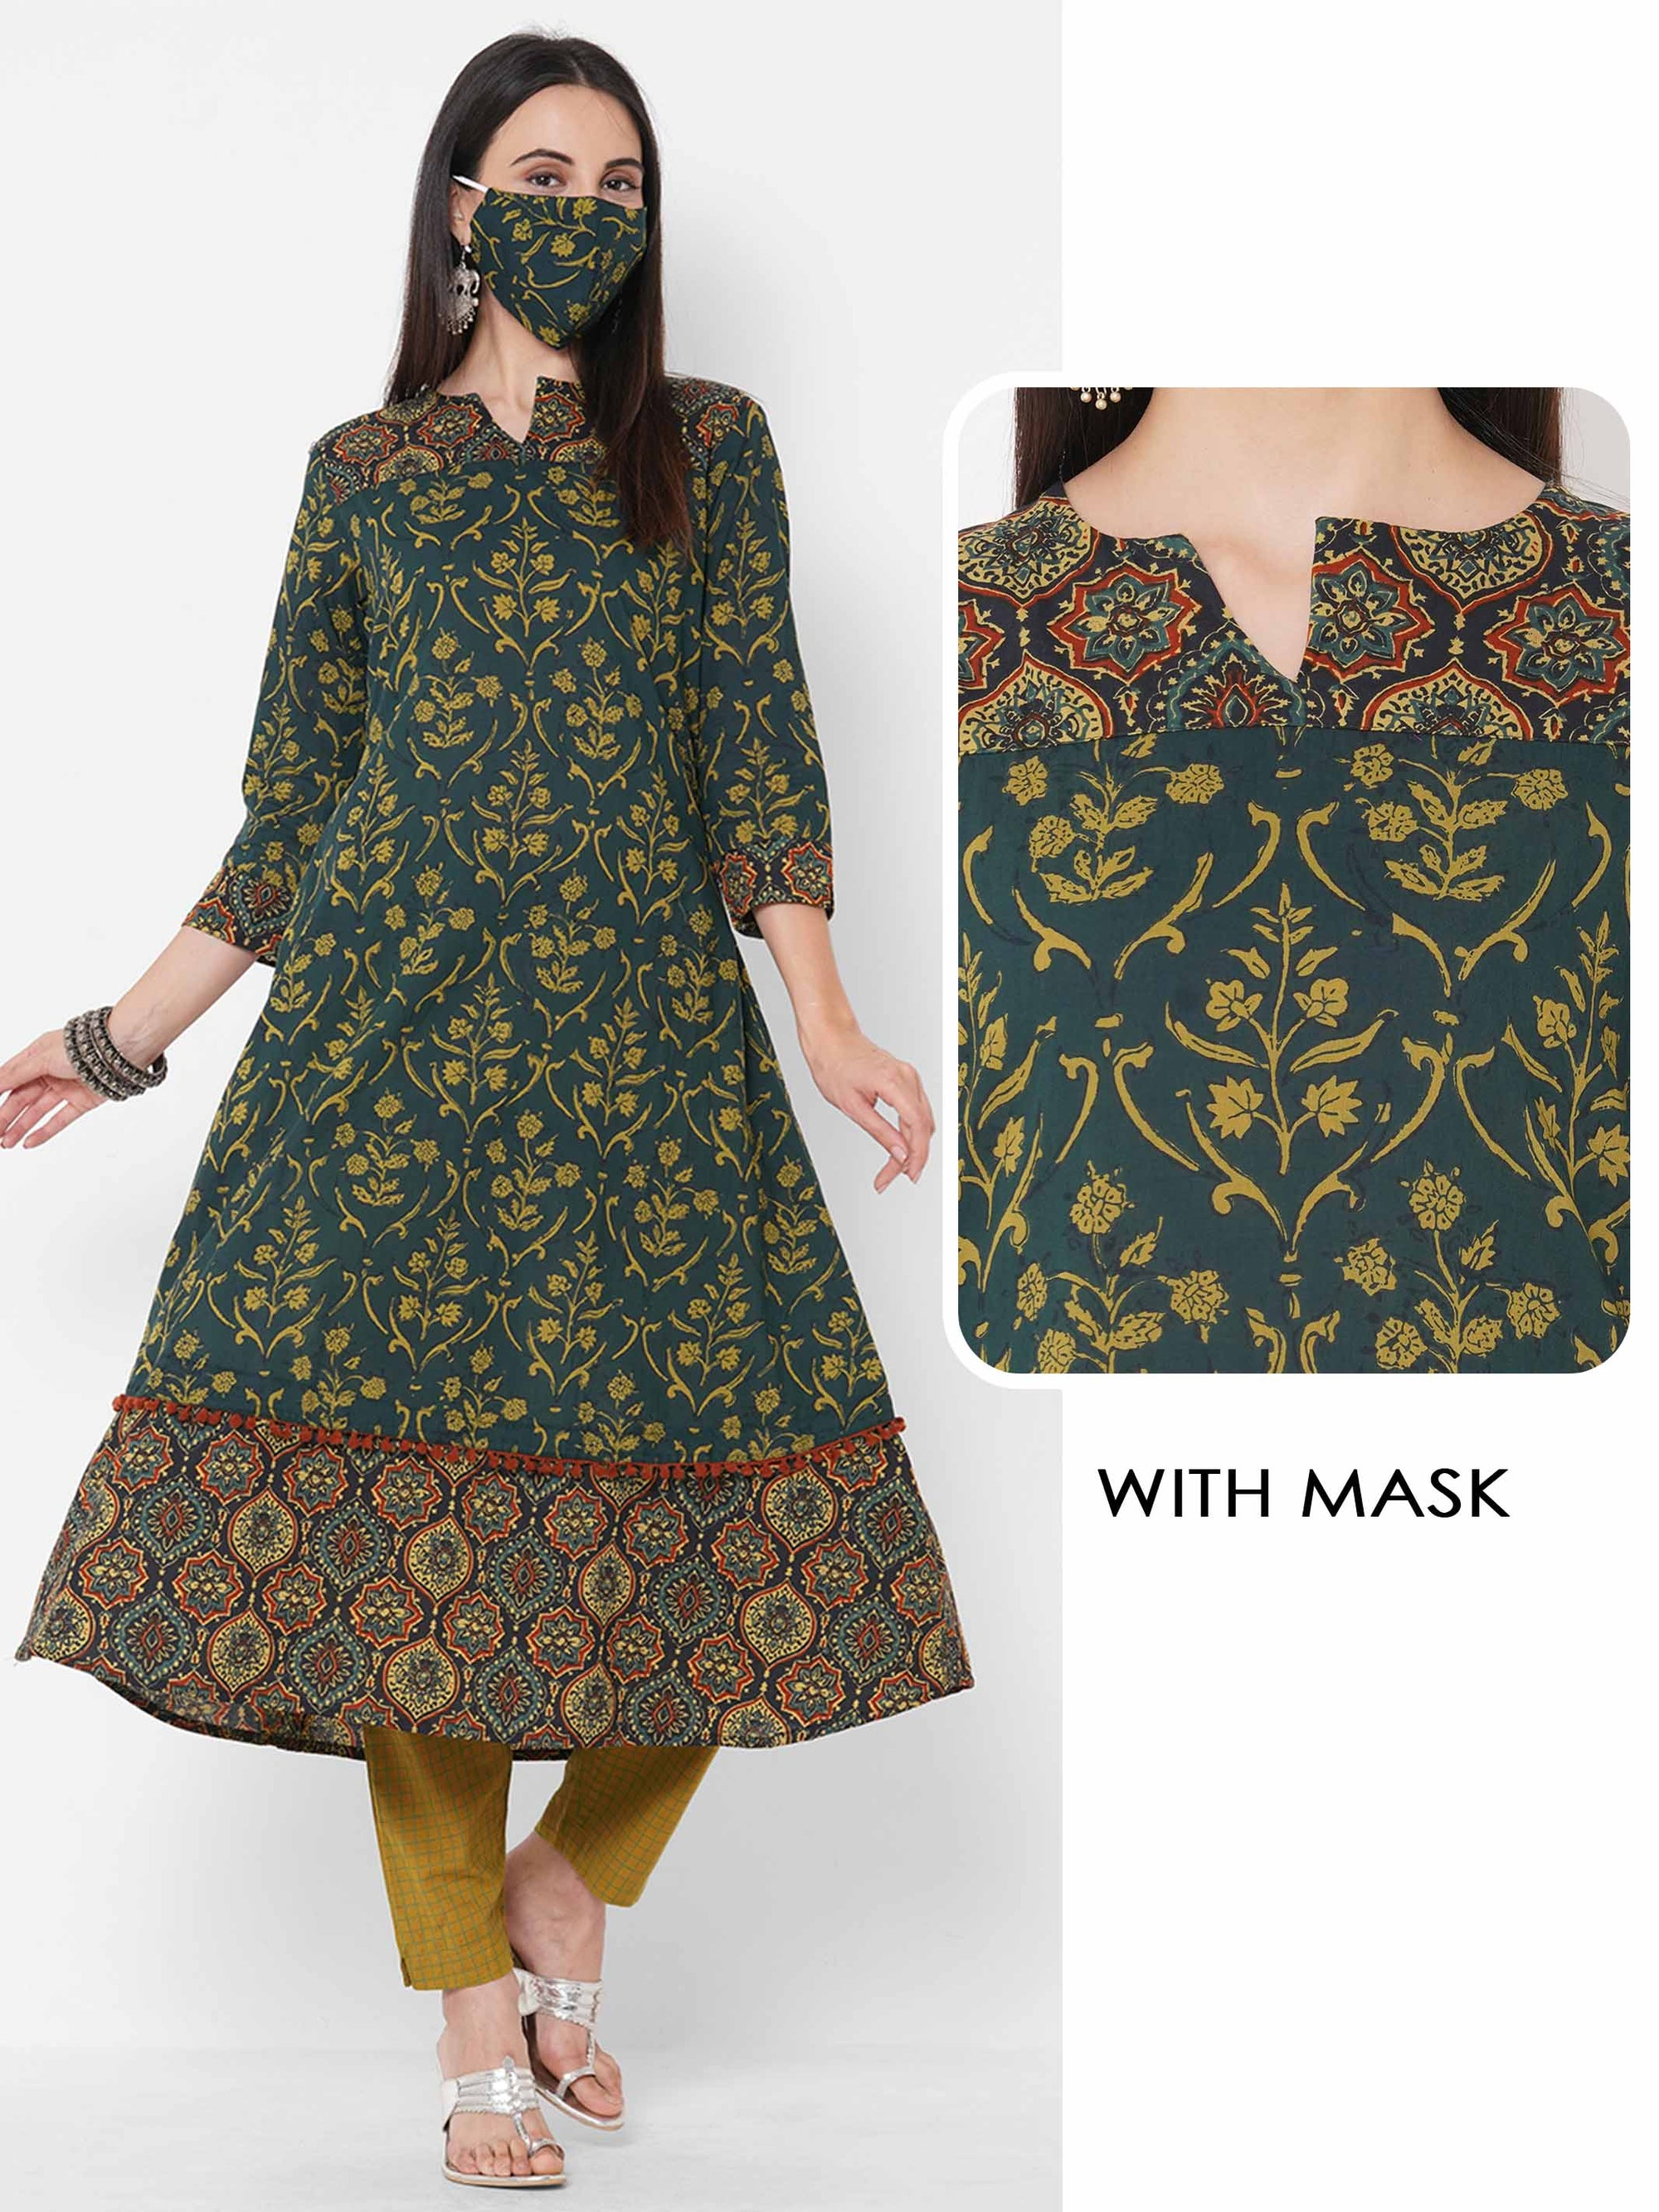 Ethnic Floral Mix Printed A-line Kurta with 2-Ply Mask - Green